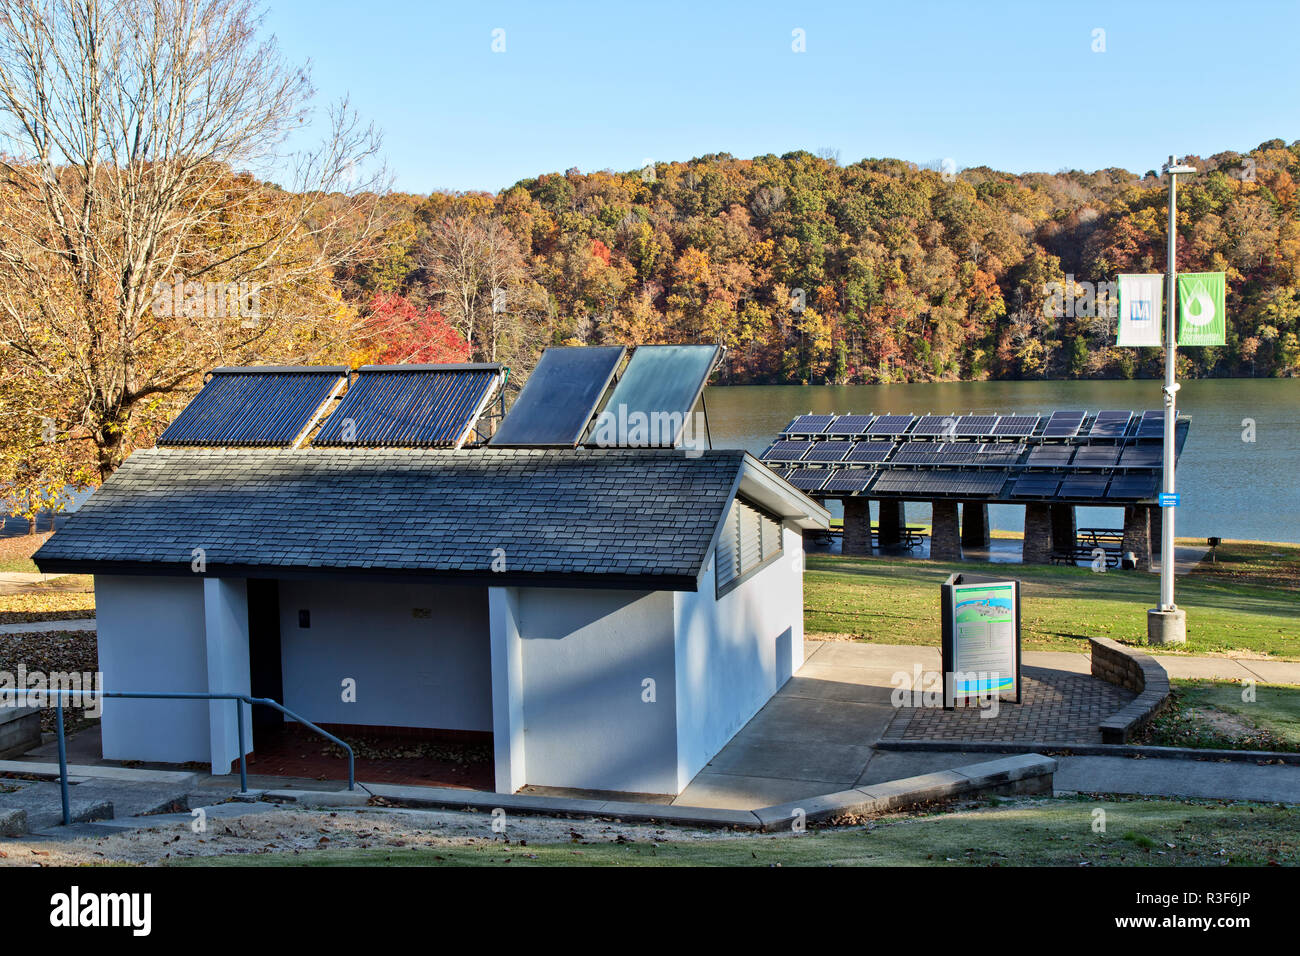 Solar hot water heaters on bathroom roof,  with solar panels in background, facilitating Melton Hill Dam Recreation Area Campground. - Stock Image